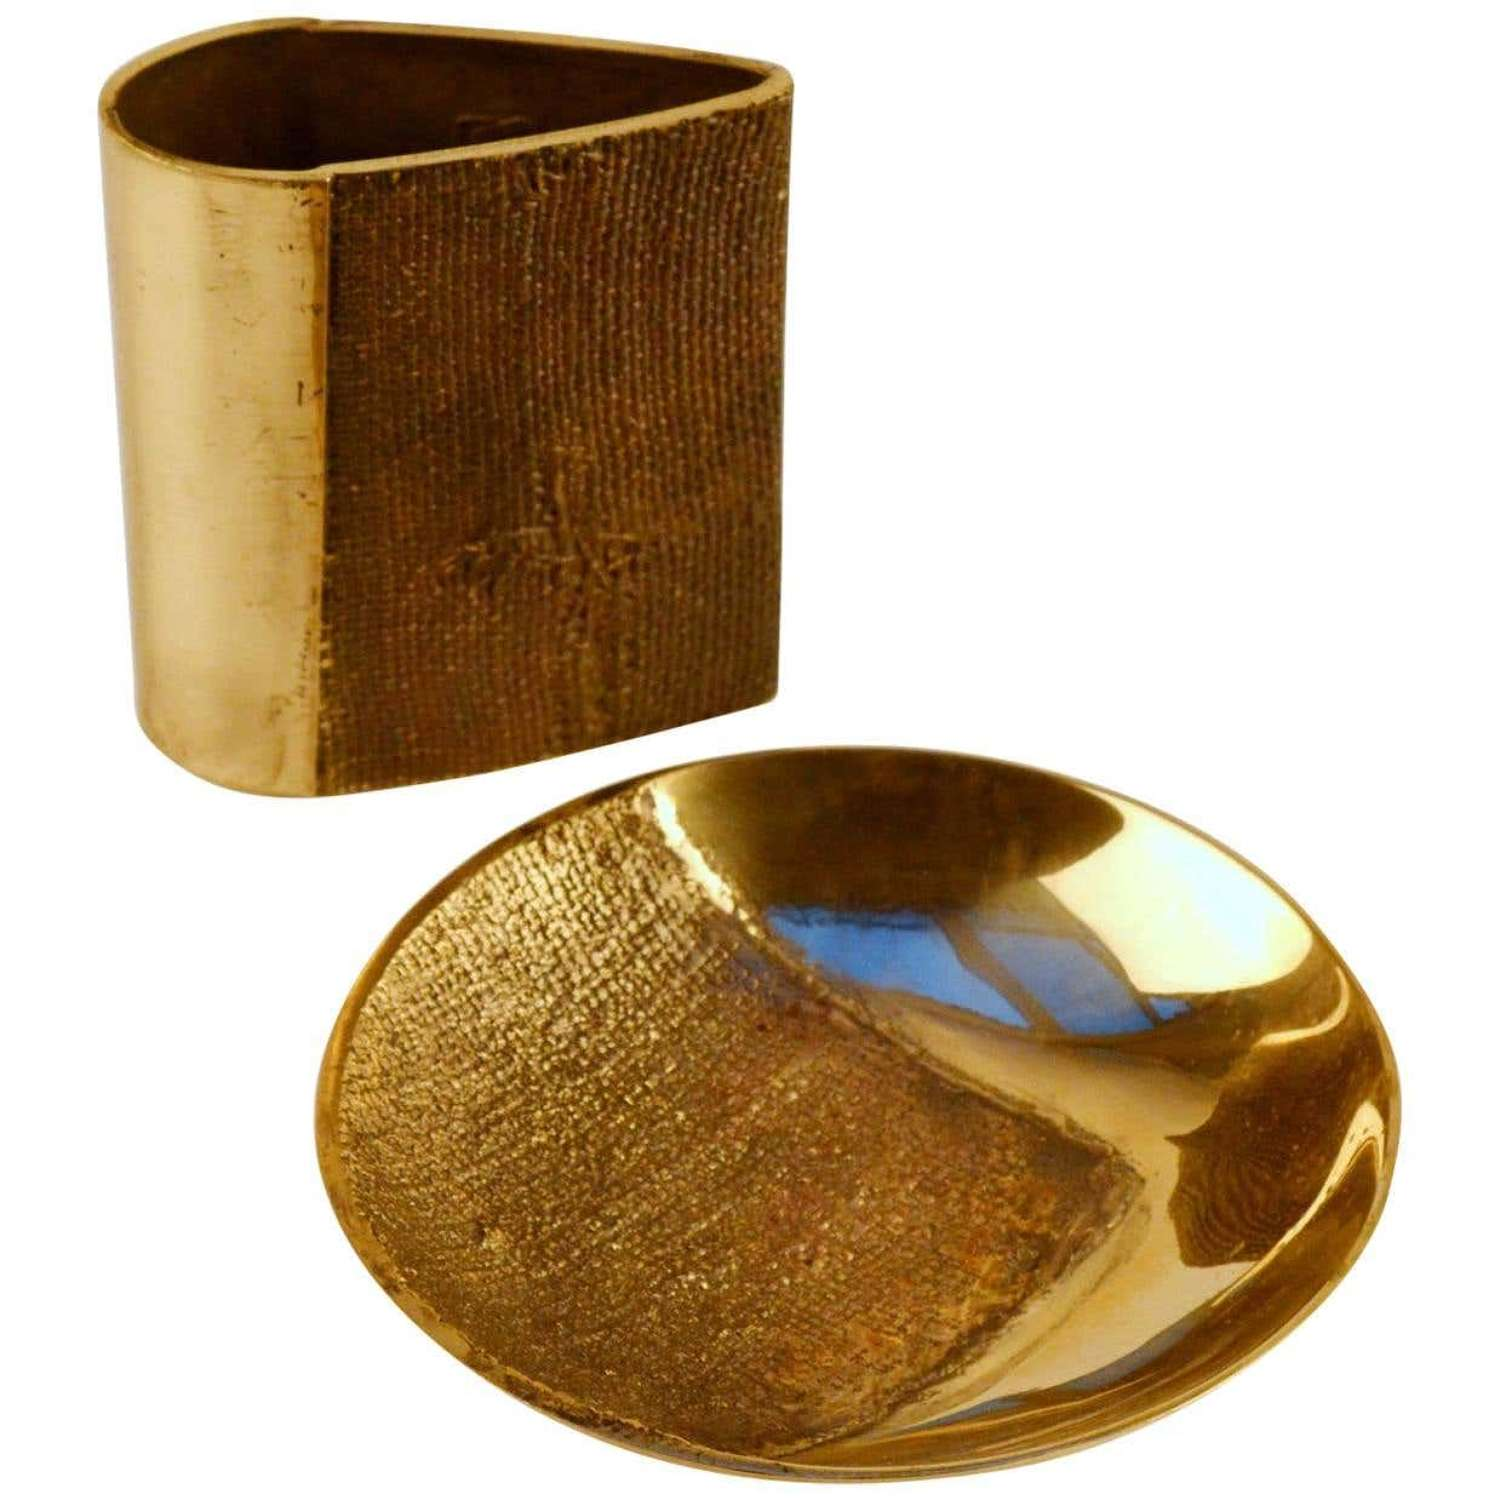 Bronze Cast Vase and Bowl by Saviato with Brutalist Finish